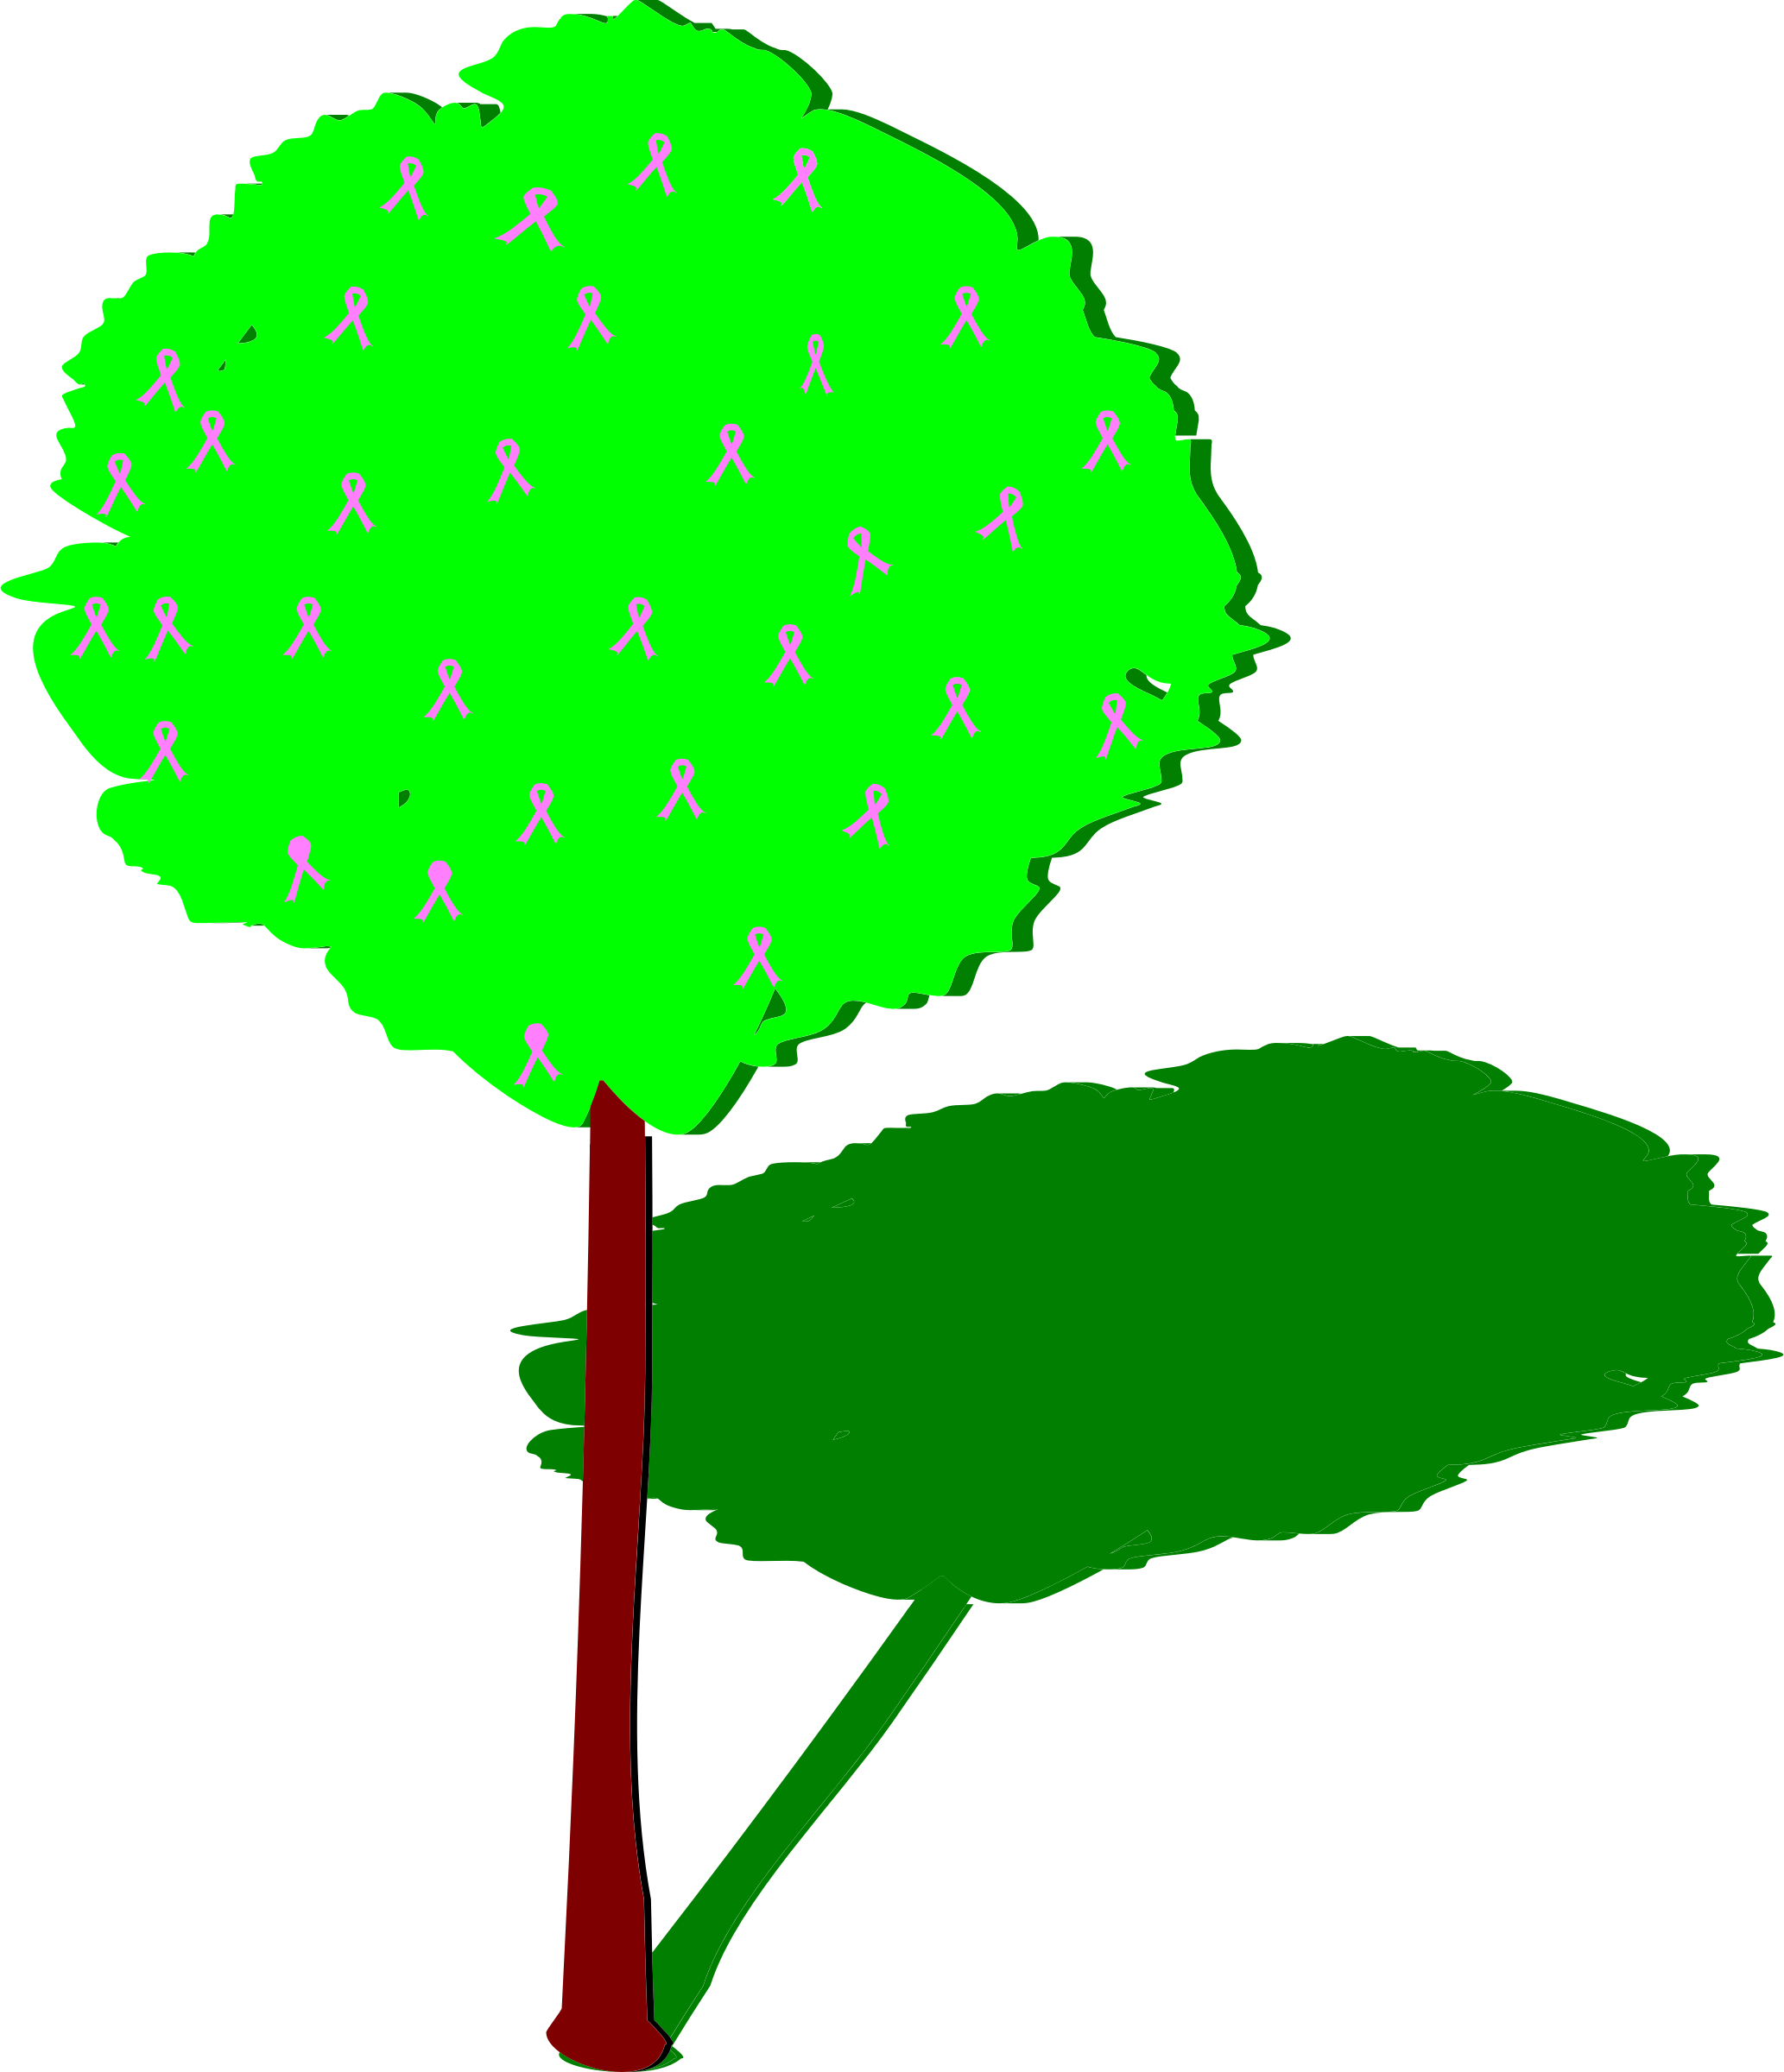 Tree of life with. Grass clipart shadow